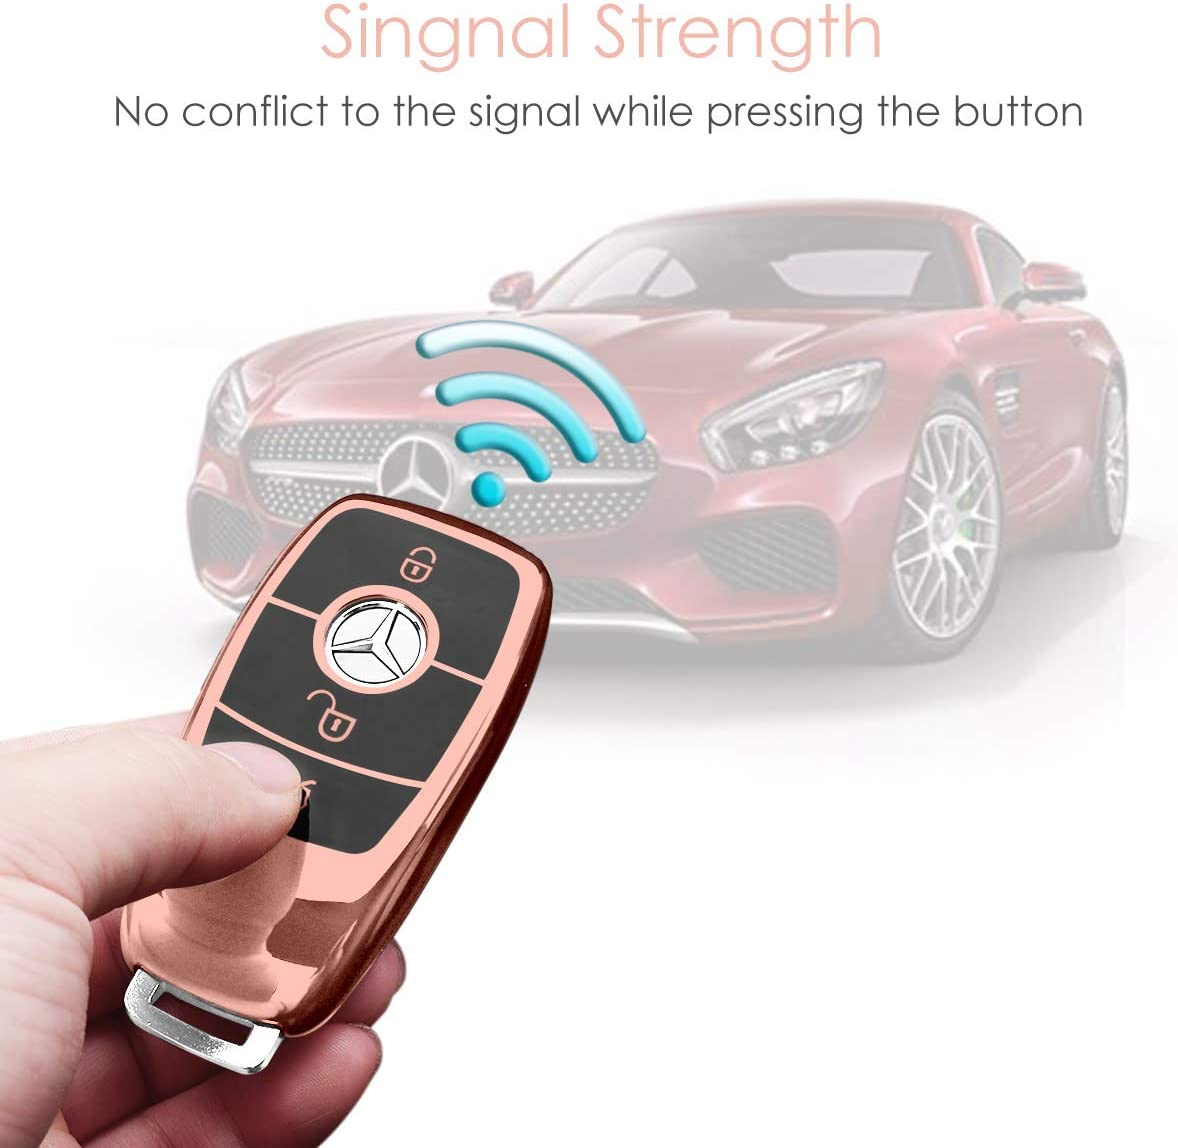 BMW Key Fob Cover,Key Fob Protector Case for BMW 1 3 4 5 6 7 Series X3 X4 M5 M6 GT3 GT5 Remote Control Key Premium Soft TPU Anti-dust Full Protection by Smof Rose